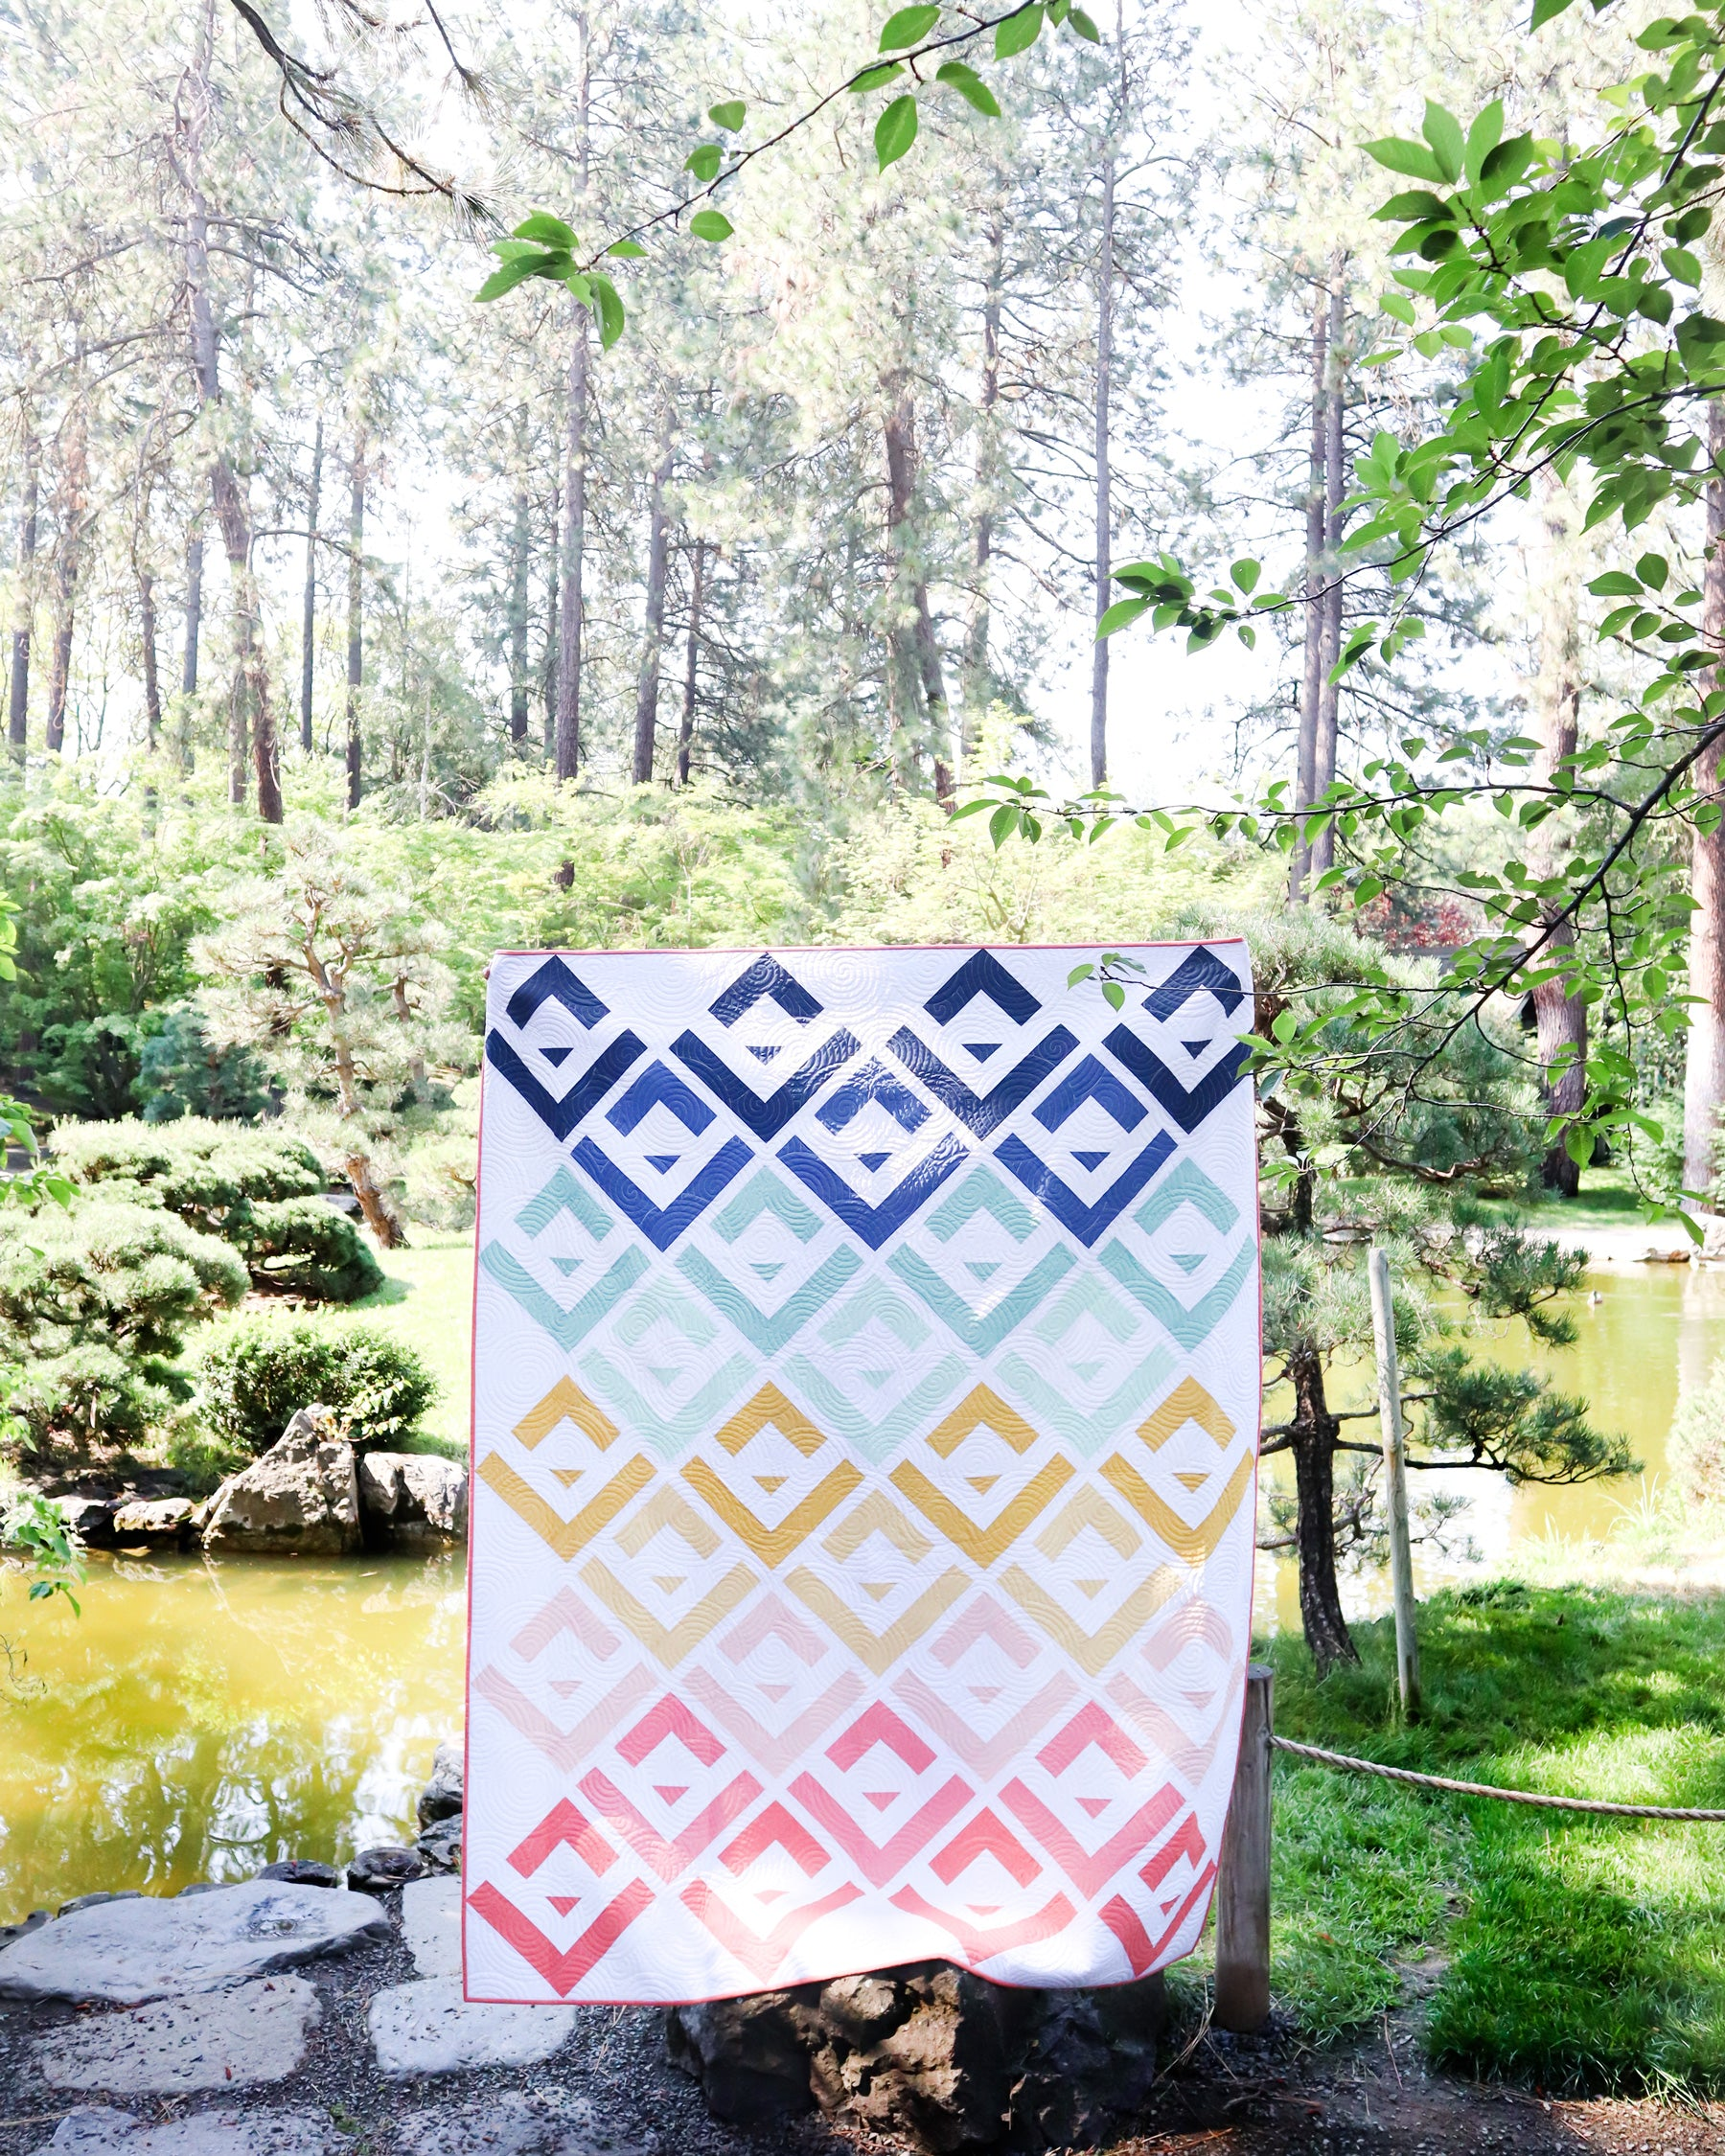 Cabin Valley Quilt - a beginner friendly, modern log cabin quilt by Cotton and Joy